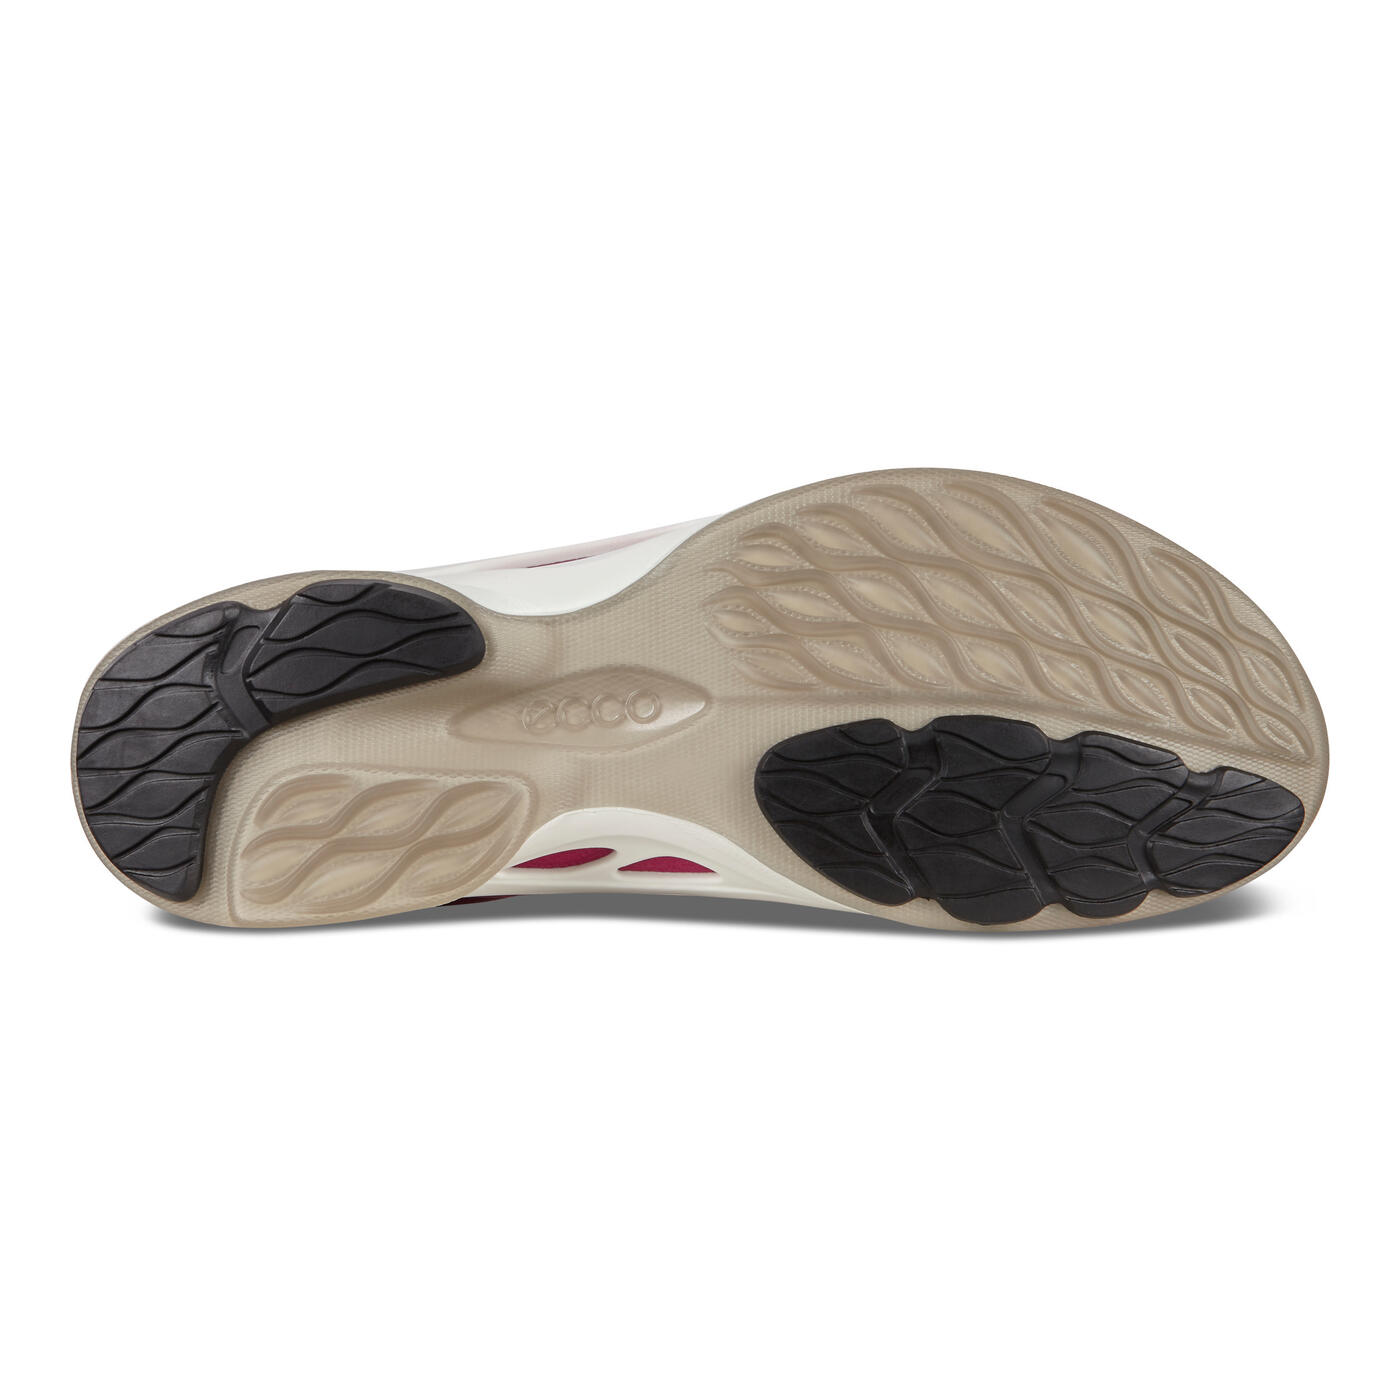 ECCO Biom Fjuel Women's Low Nub Shoes